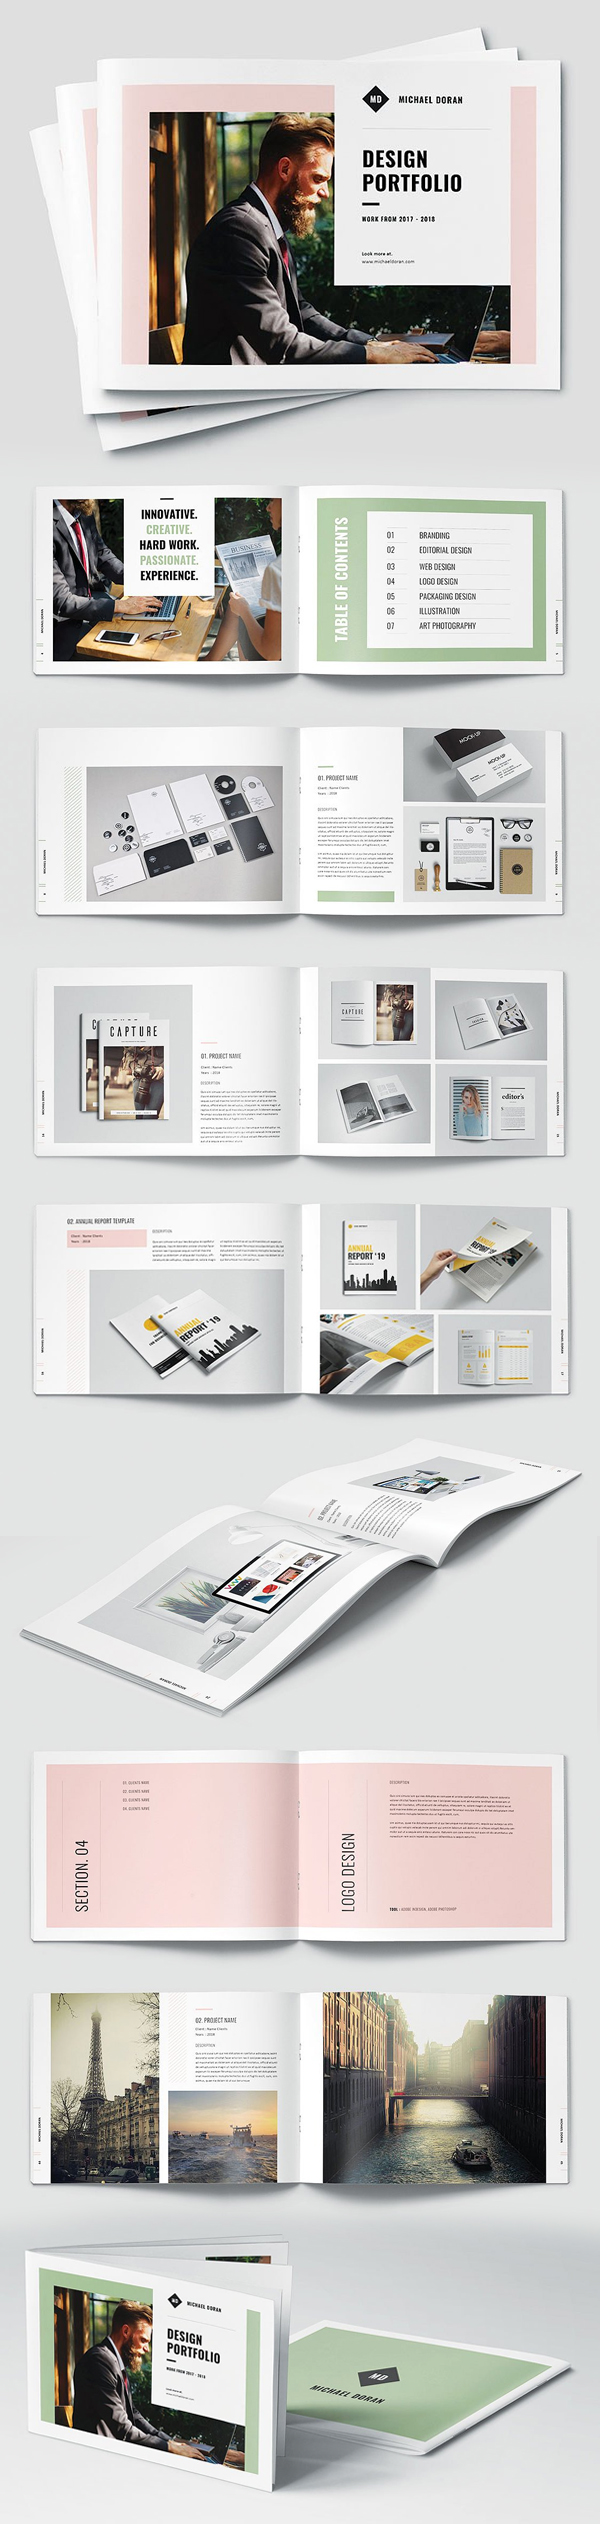 20 New Professional Catalog Brochure Templates Design Graphic Design Junction,Wrist Name Tattoos Designs On Arm